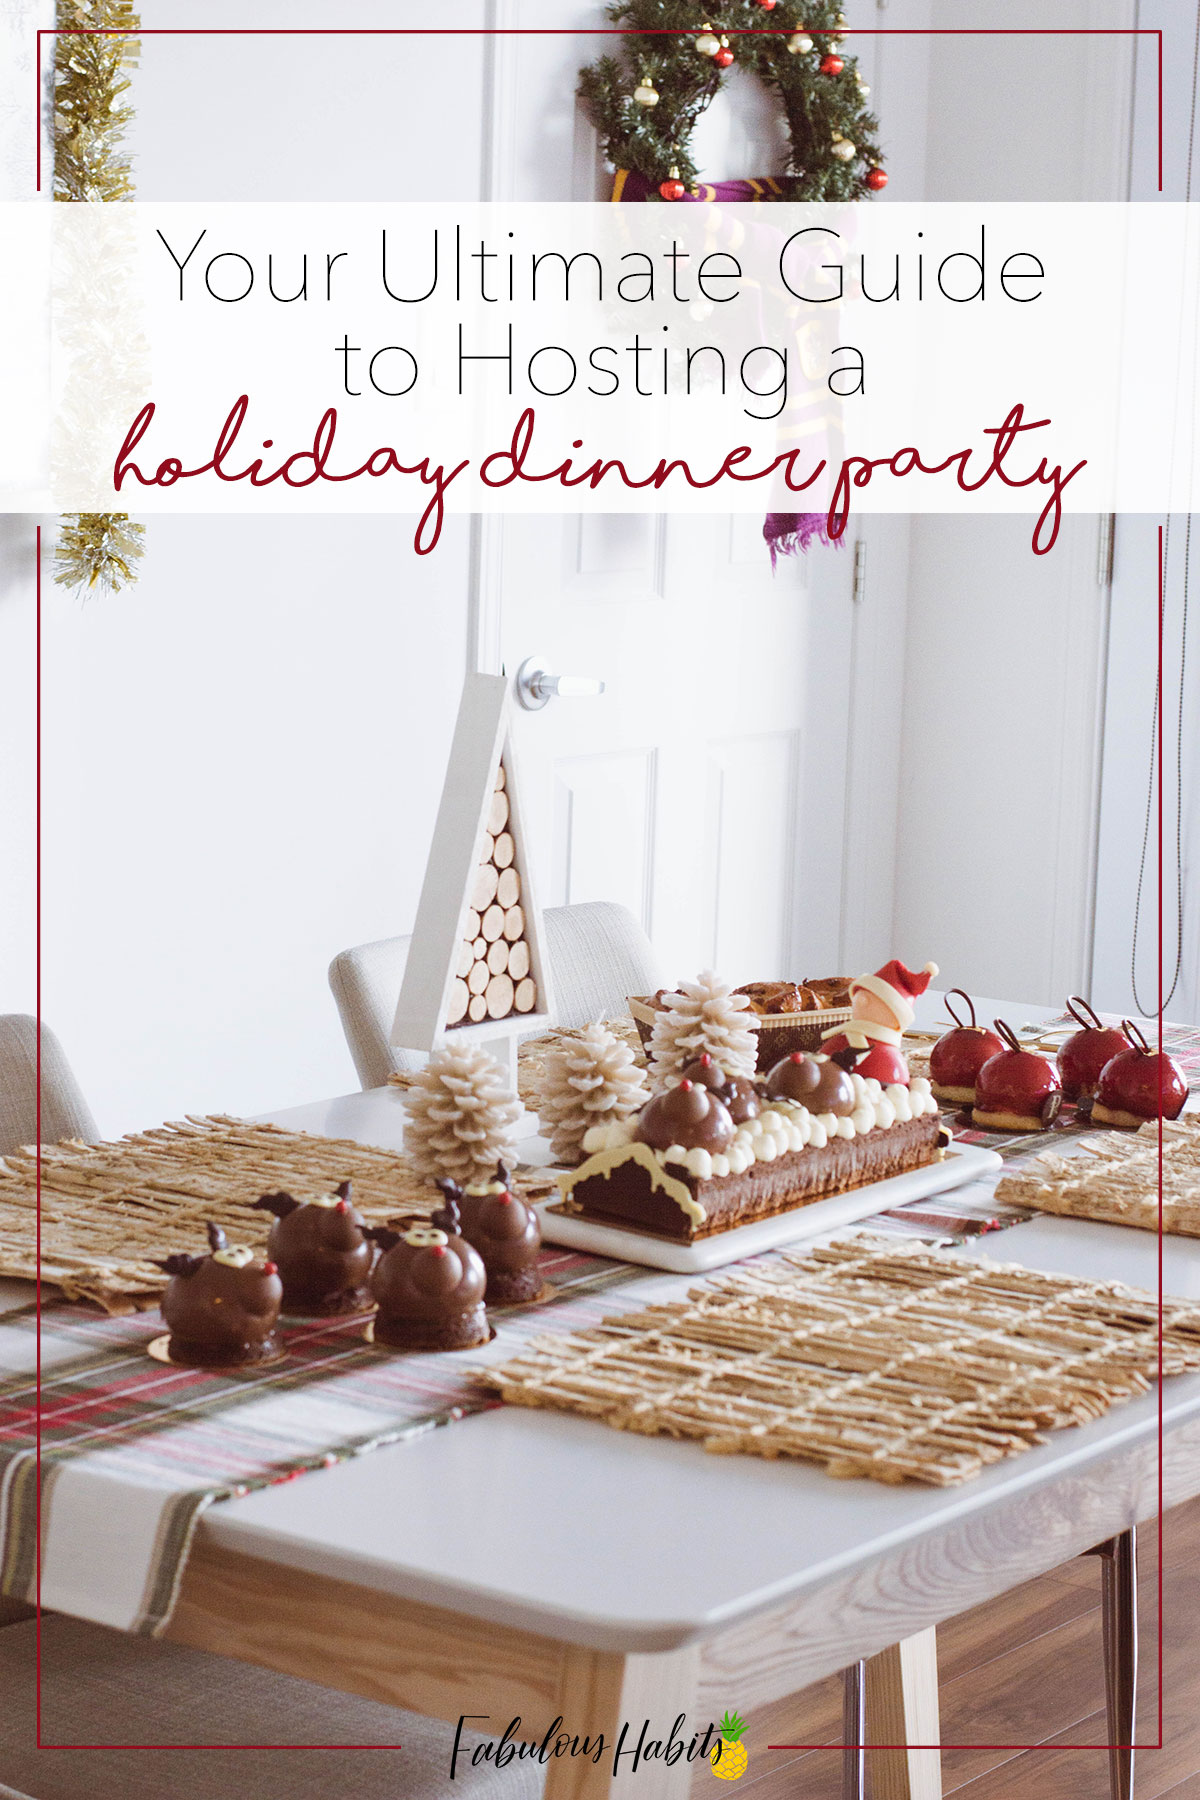 Play hostess without losing your cool: here are our surefire tips to throwing (and enjoying) your own holiday dinner party.